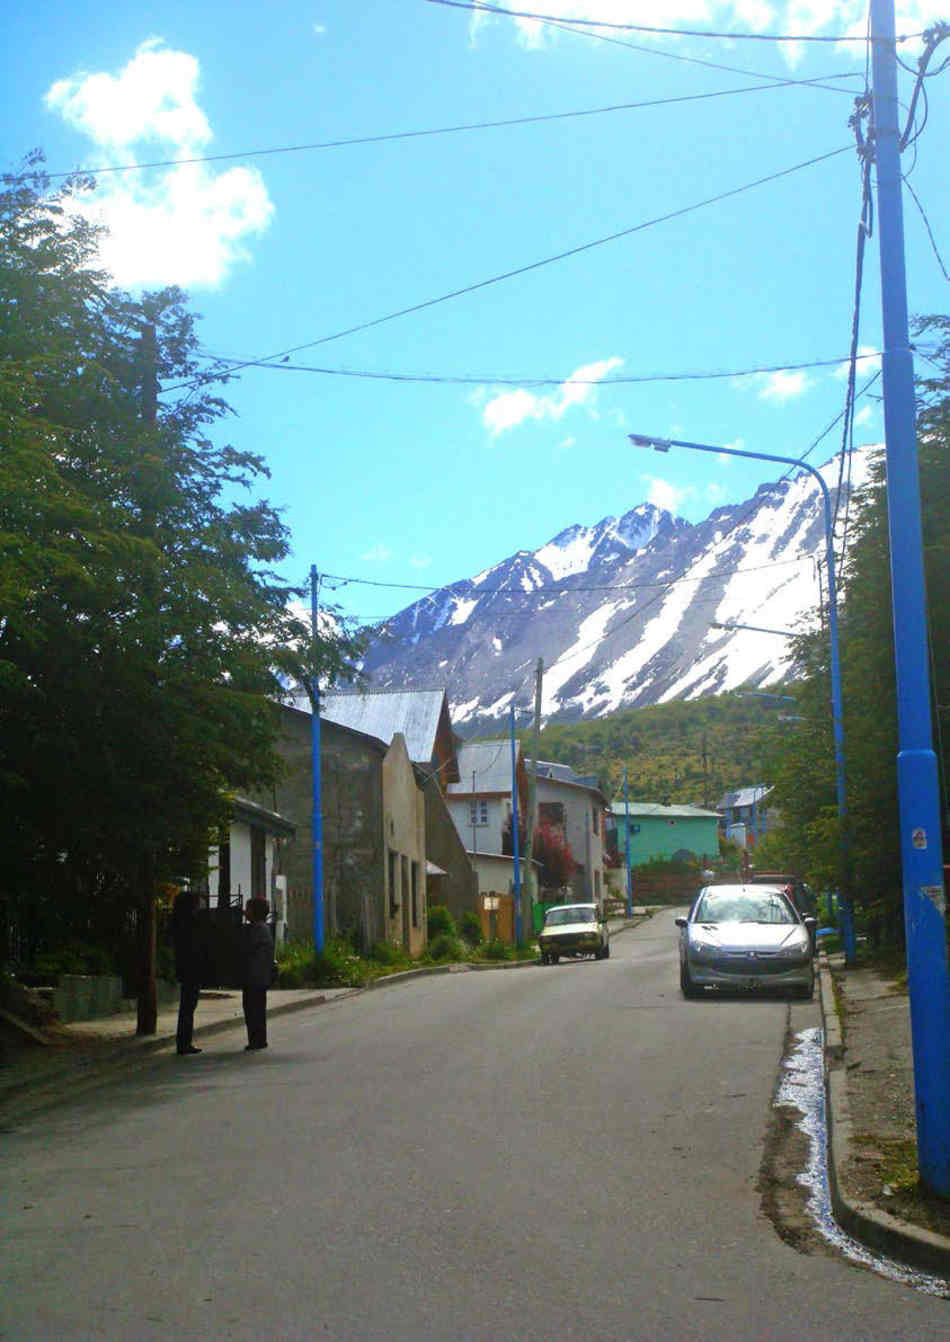 Argentinian street with moundtains in the background